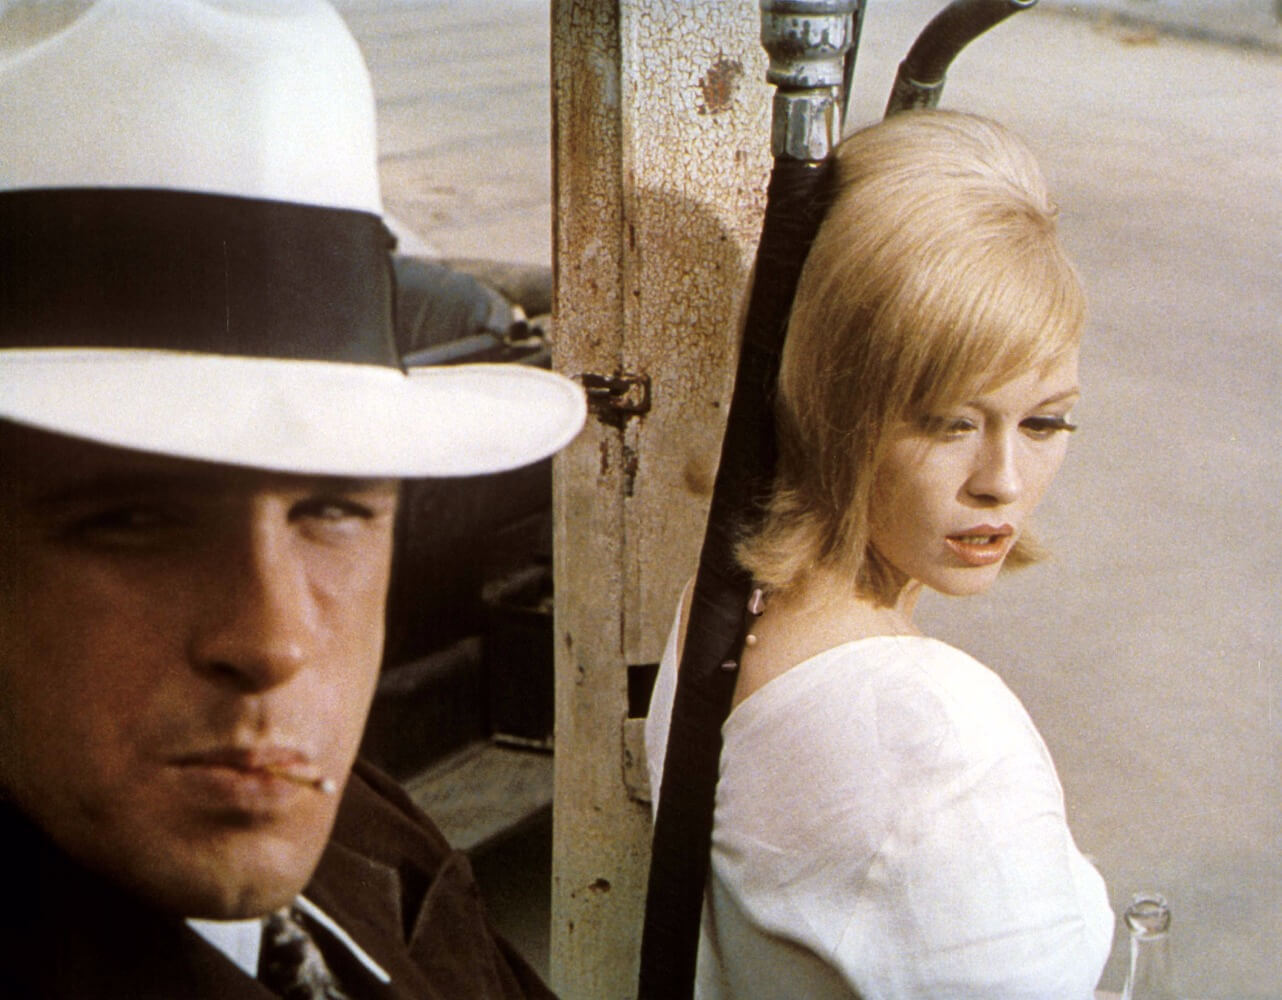 bonnie and clyde beginning of a new hollywood era Then it began to play in art houses and then robert rauschenberg did a cover for time magazine that featured bonnie and clyde as the avatar of the new hollywood cinema.